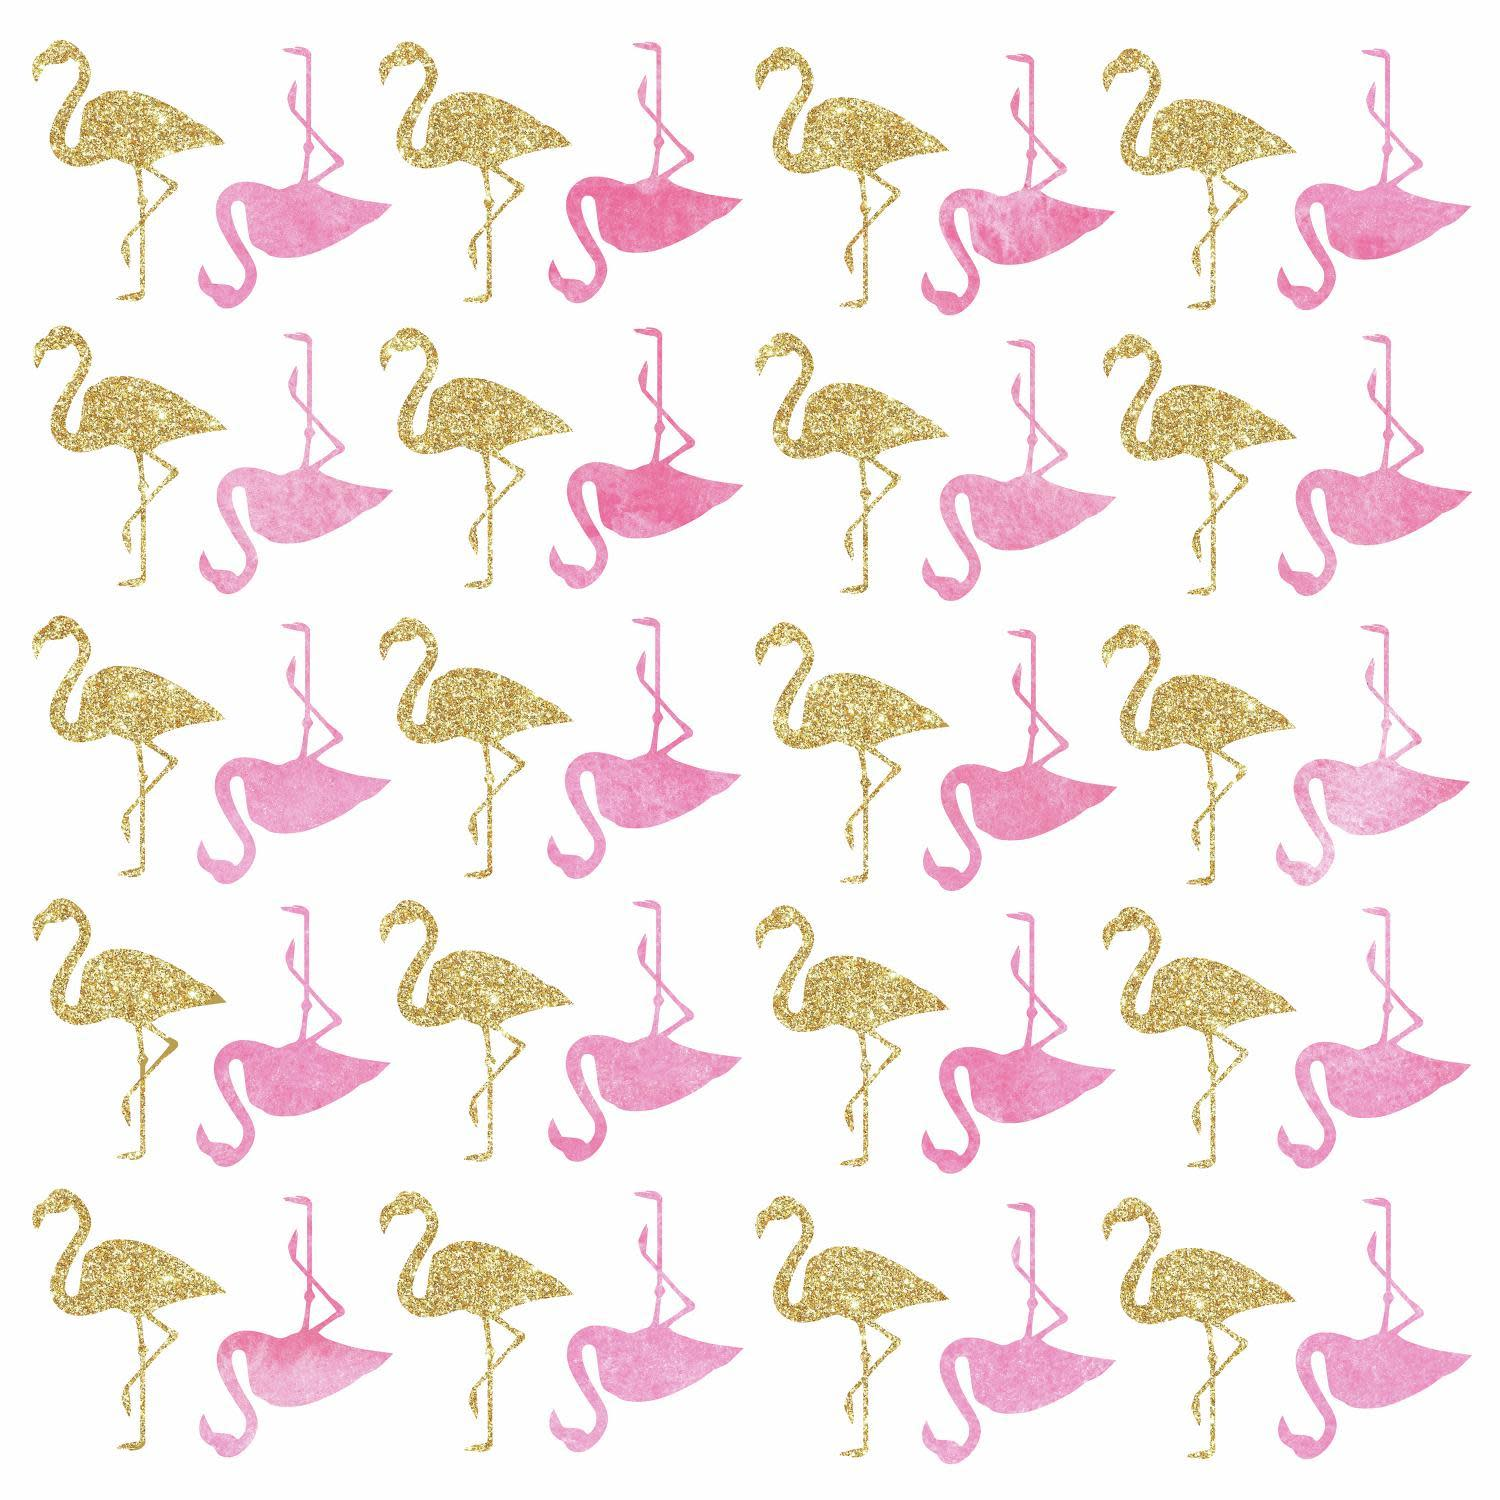 Flamingo Peel and Stick Wall Decals with Glitter